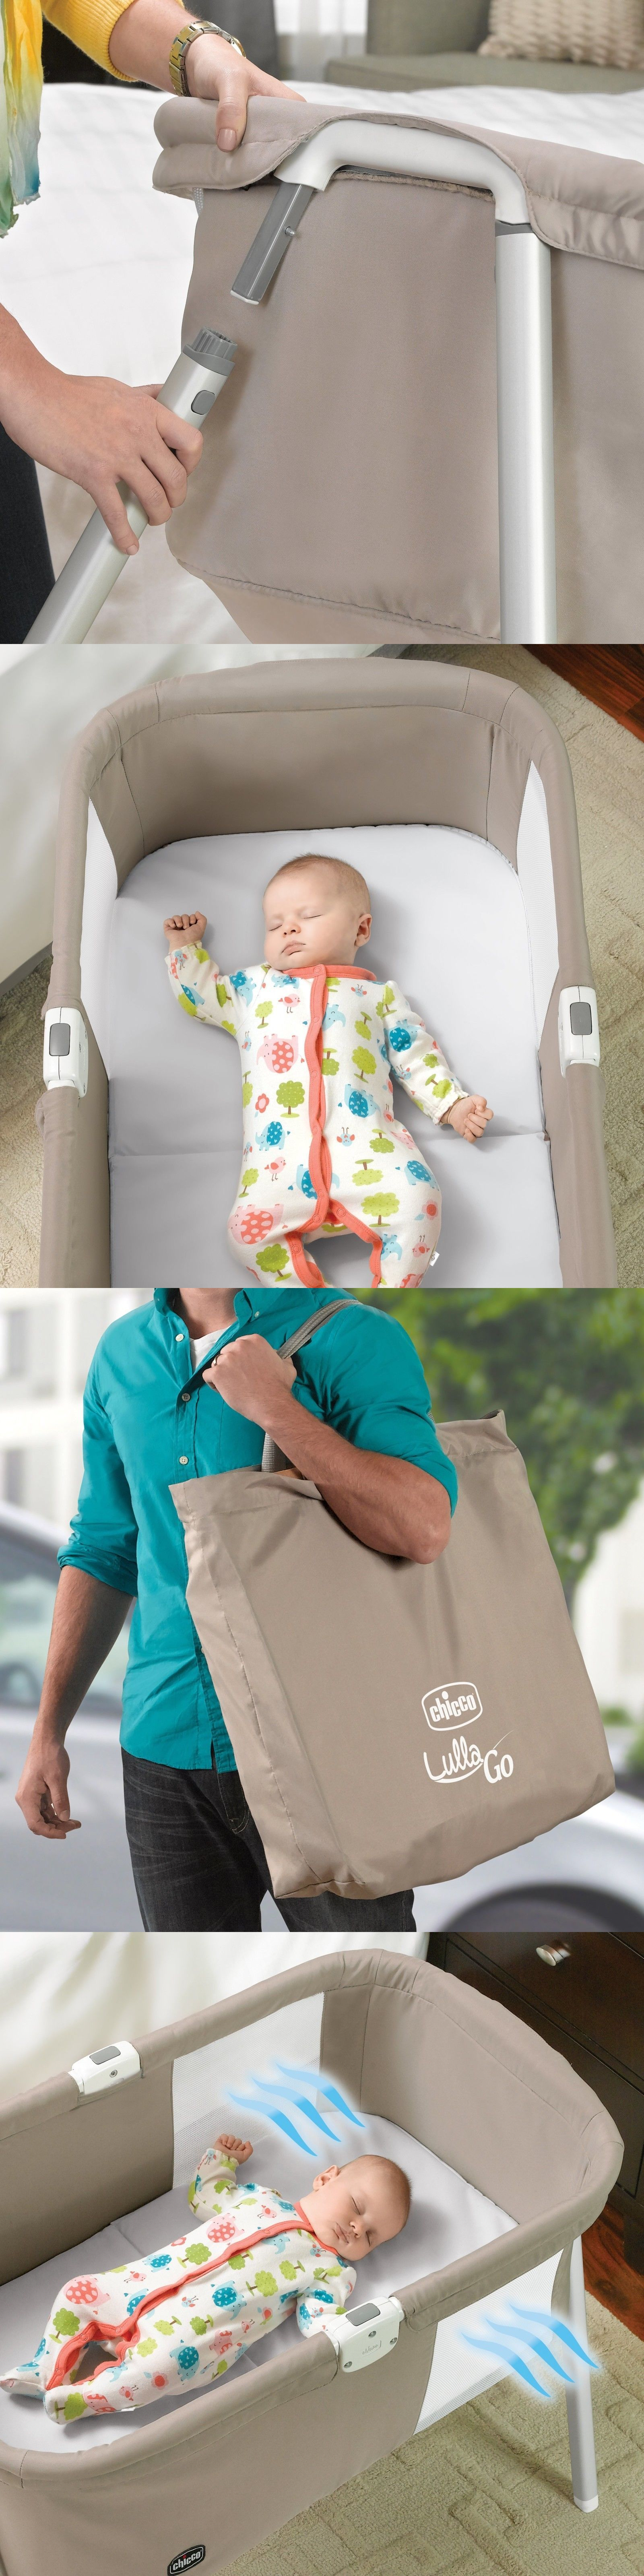 playpen heavy n baby play and babies playard travel com portable yard best cribs from read playpens top featured more warmer bottle for pack crib lotus